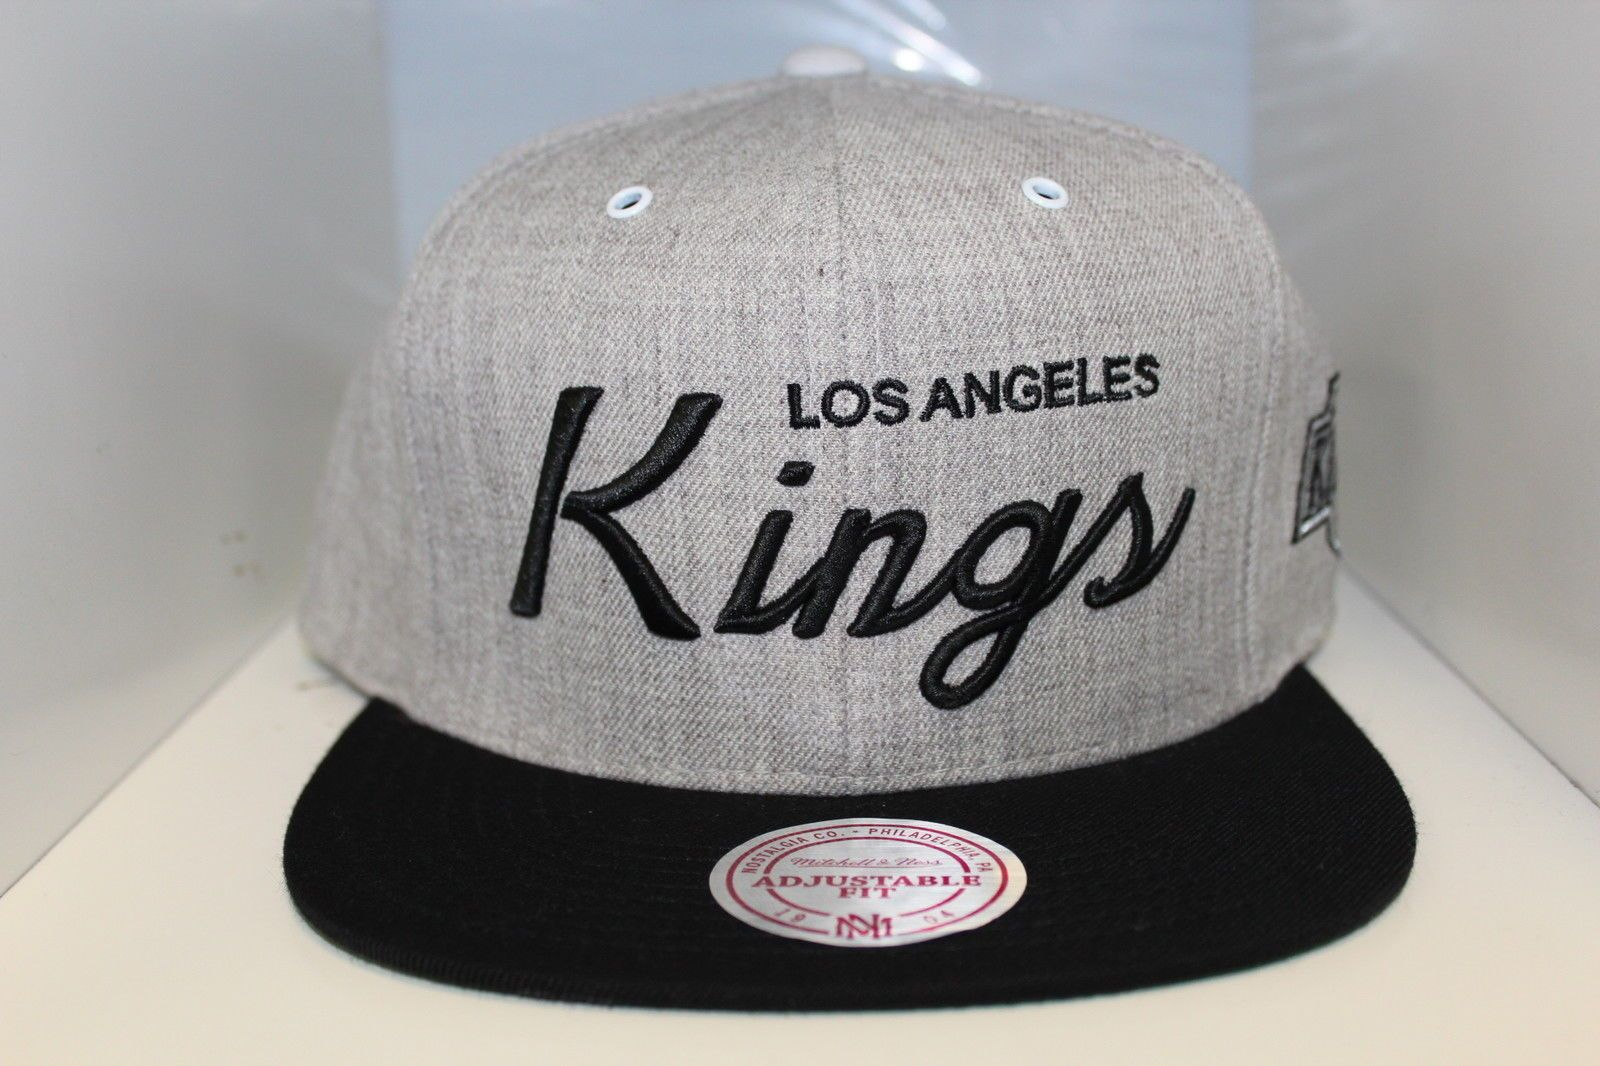 Los Angeles Kings Special Script Vintage Collection Snapback by Mitchell    Ness 3478a7e4dab0